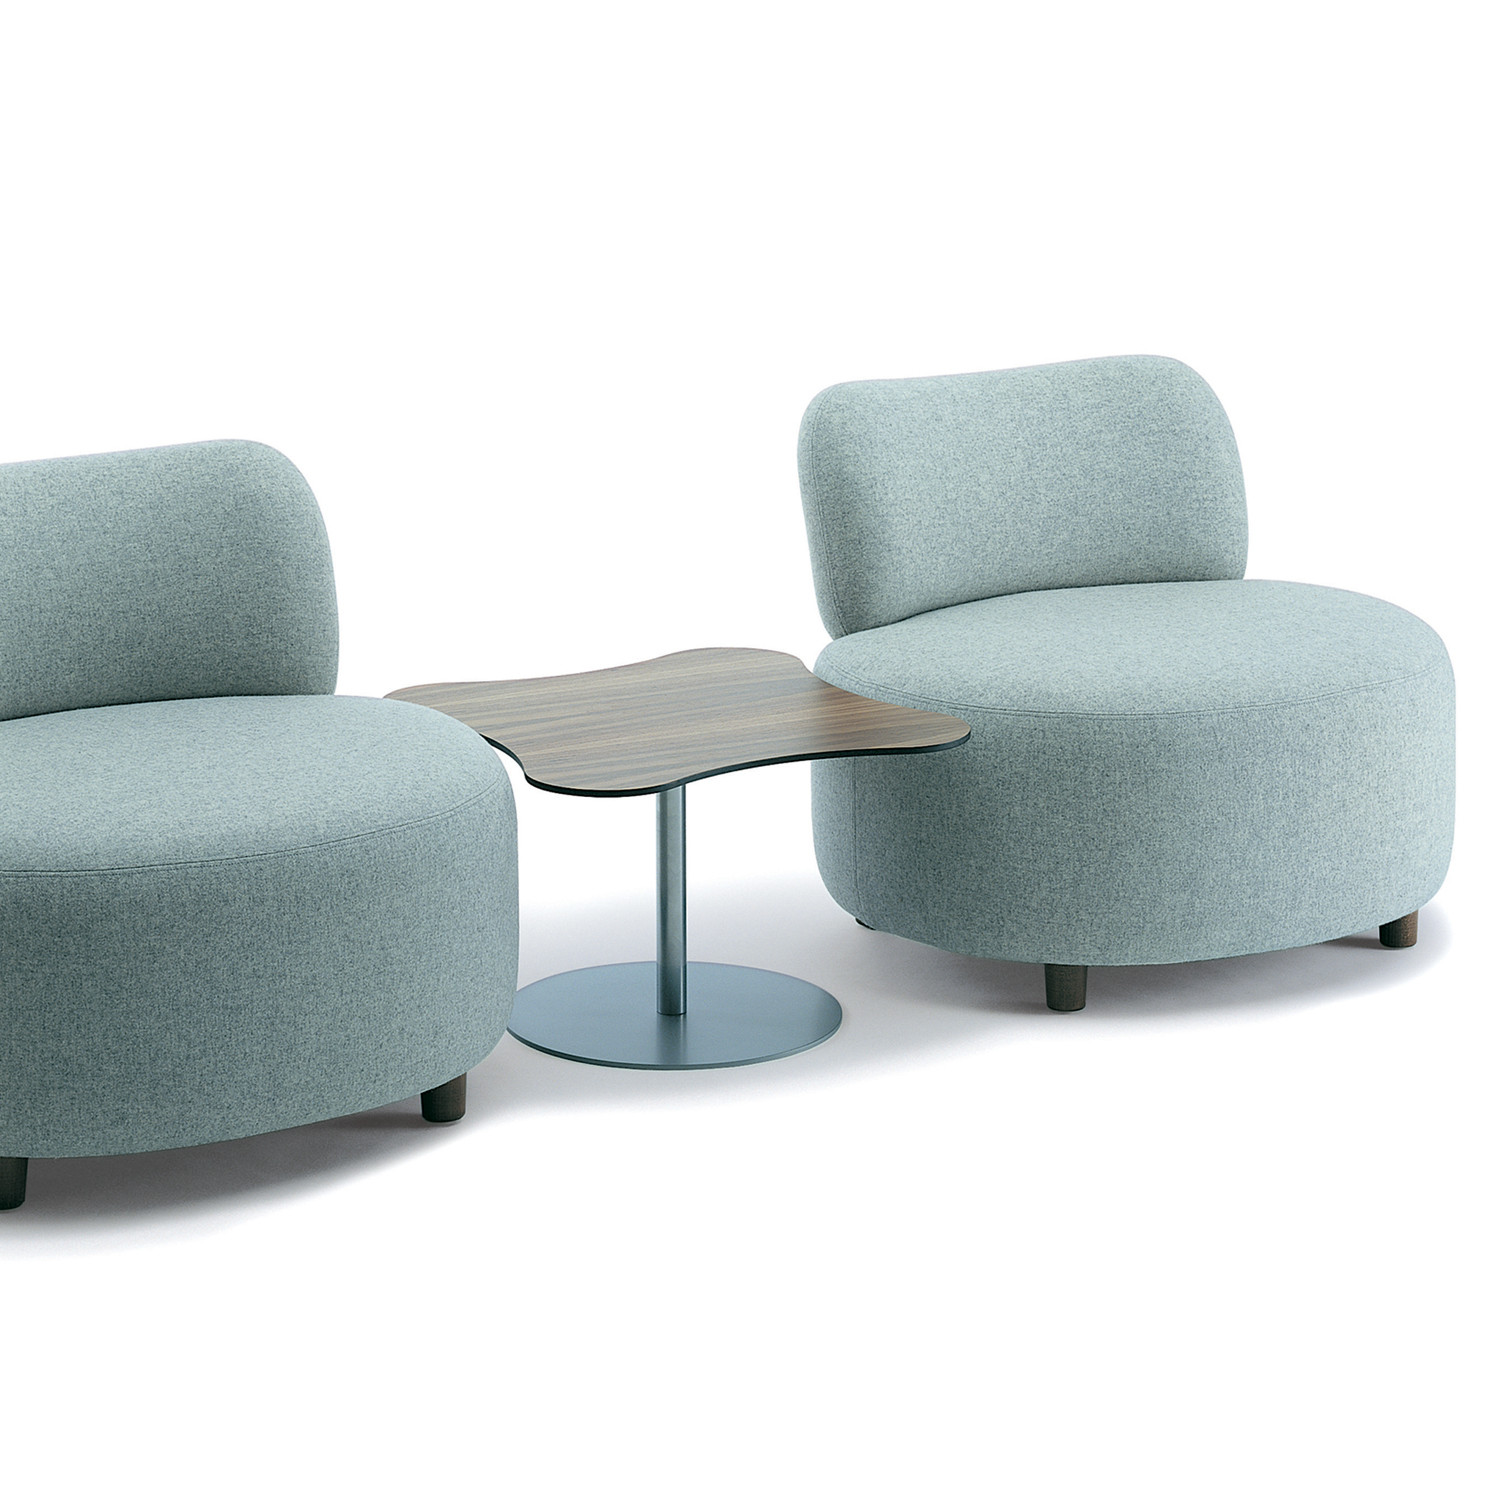 HM61 Oxo Chairs + HM61e Side Table